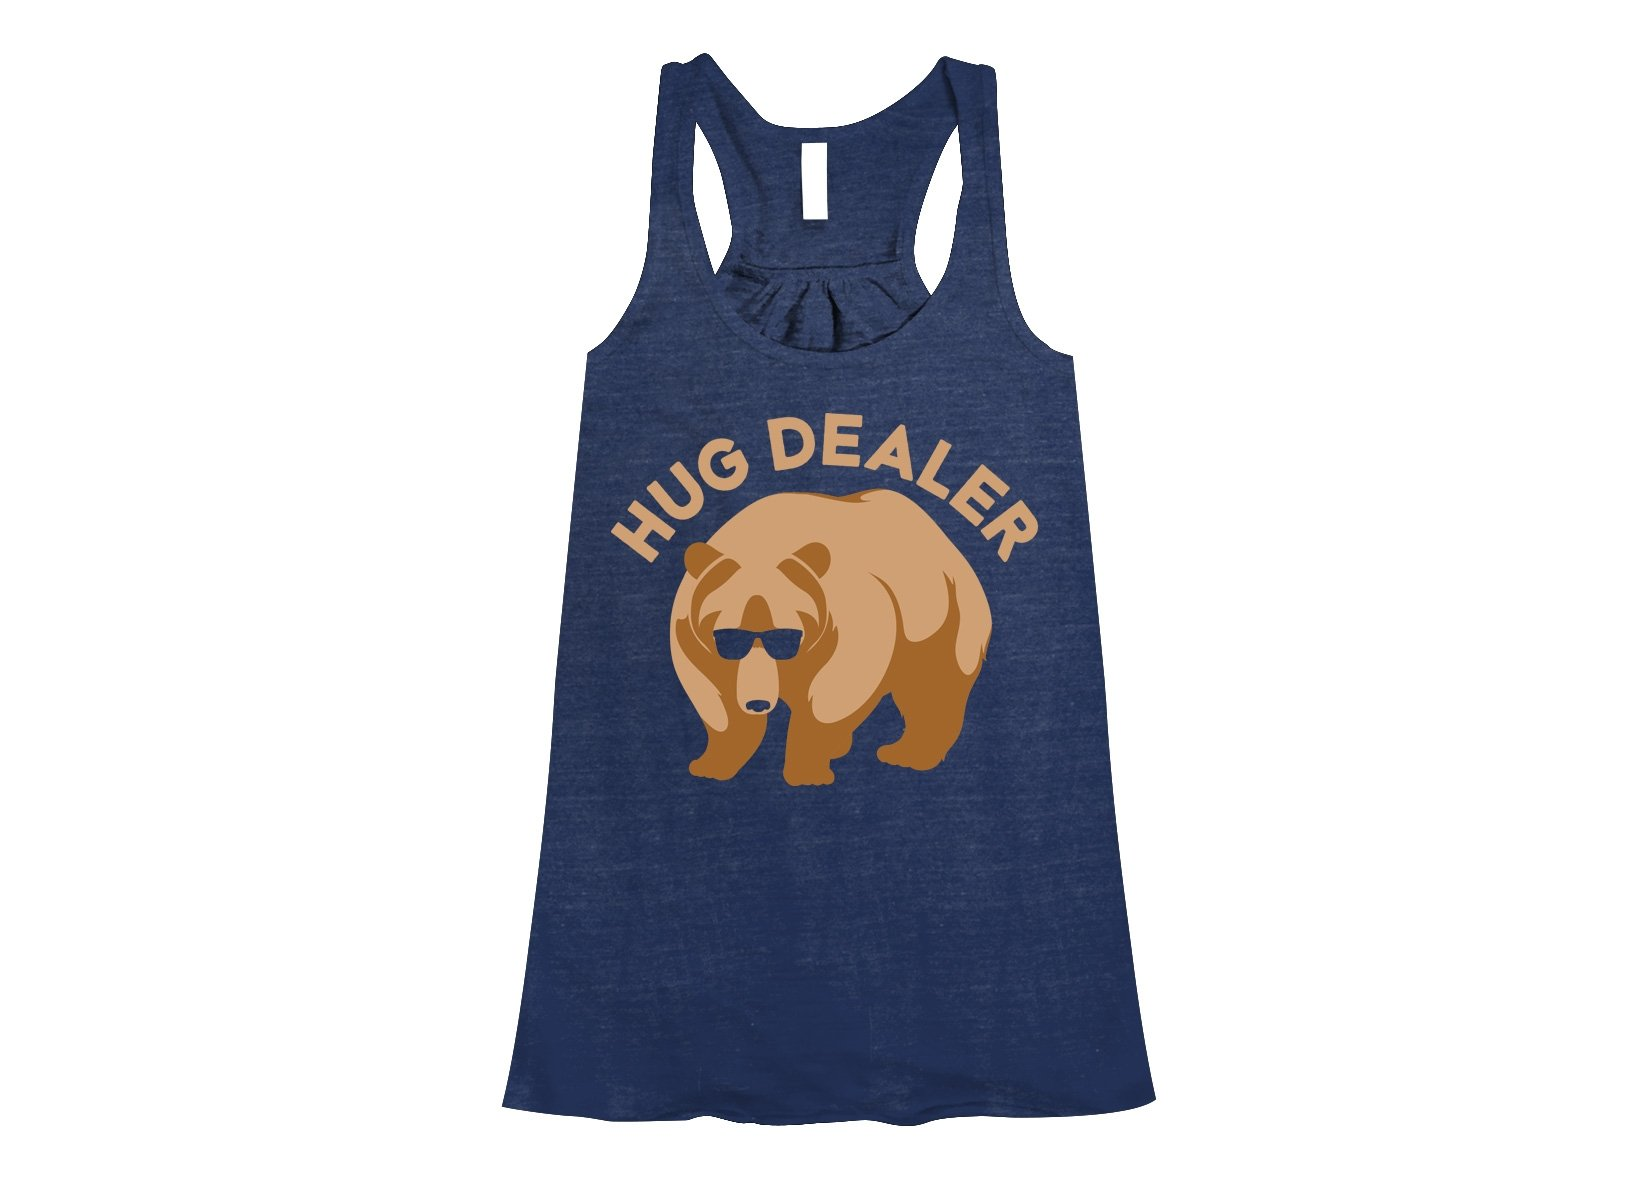 Hug Dealer on Womens Tanks T-Shirt